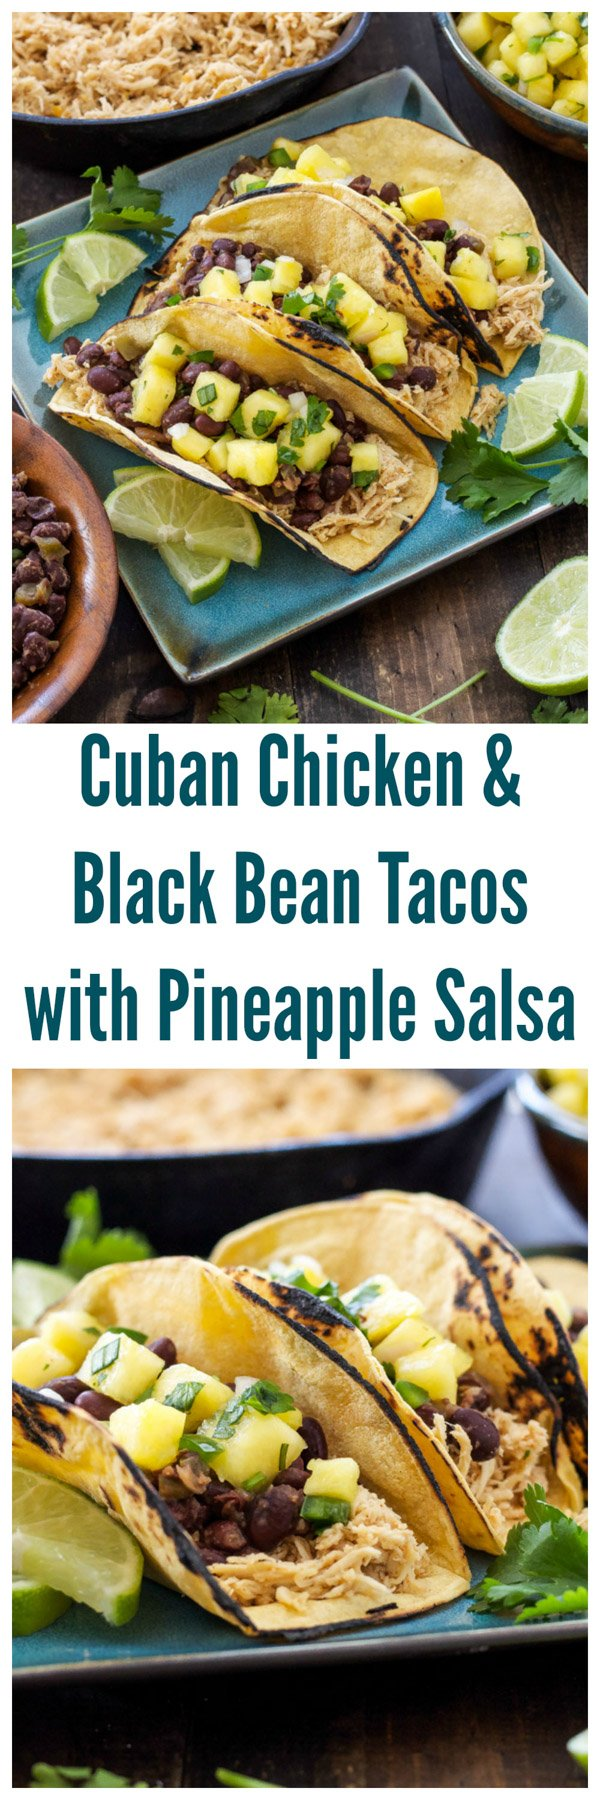 Cuban Chicken and Black Bean Tacos with Pineapple Salsa - Recipe ...